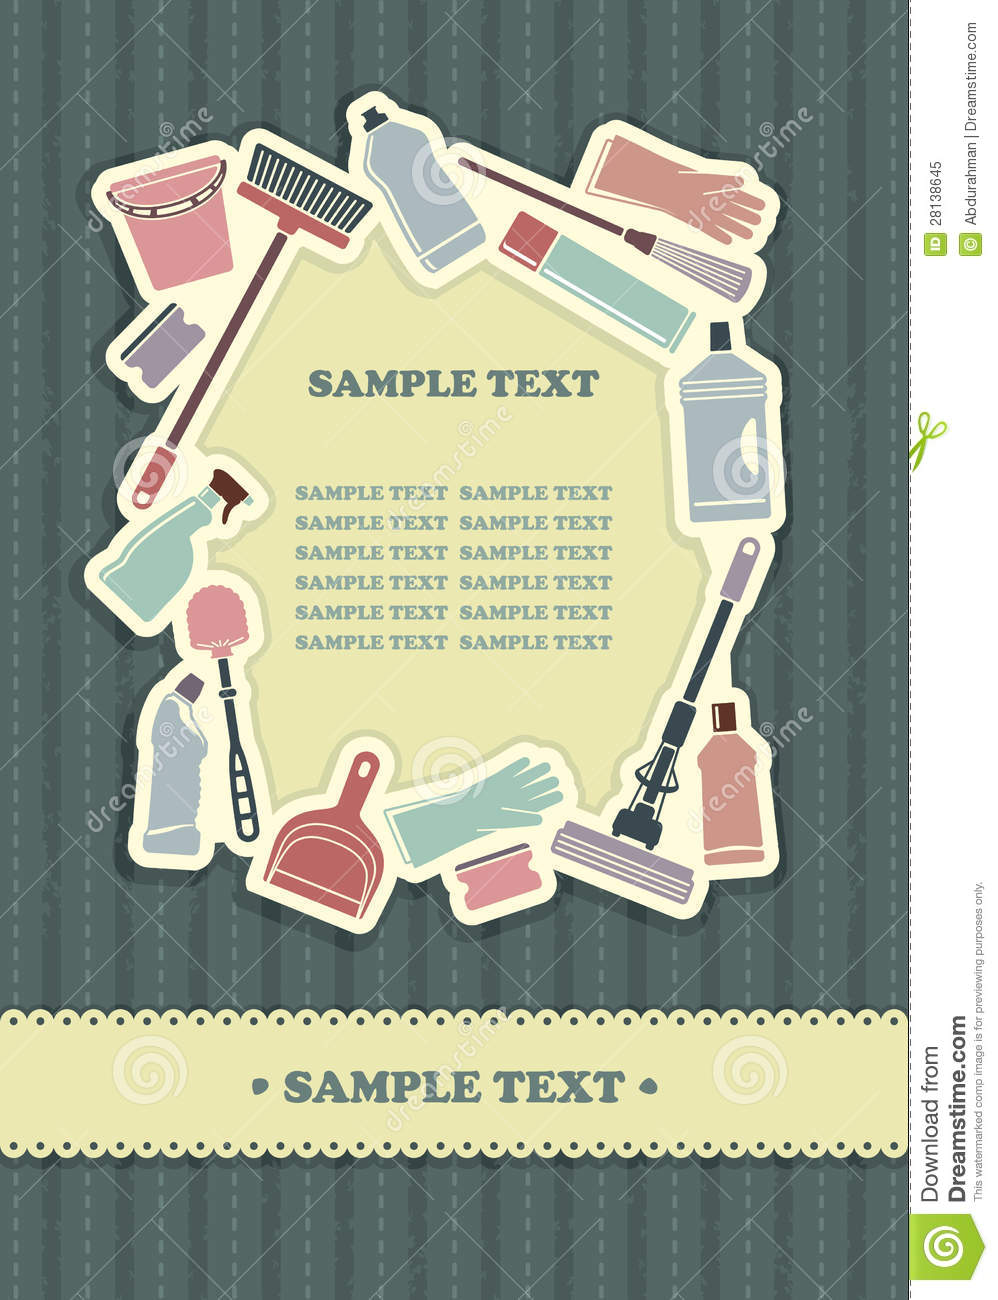 House Cleaning House Cleaning Background Images For Business 998x1300